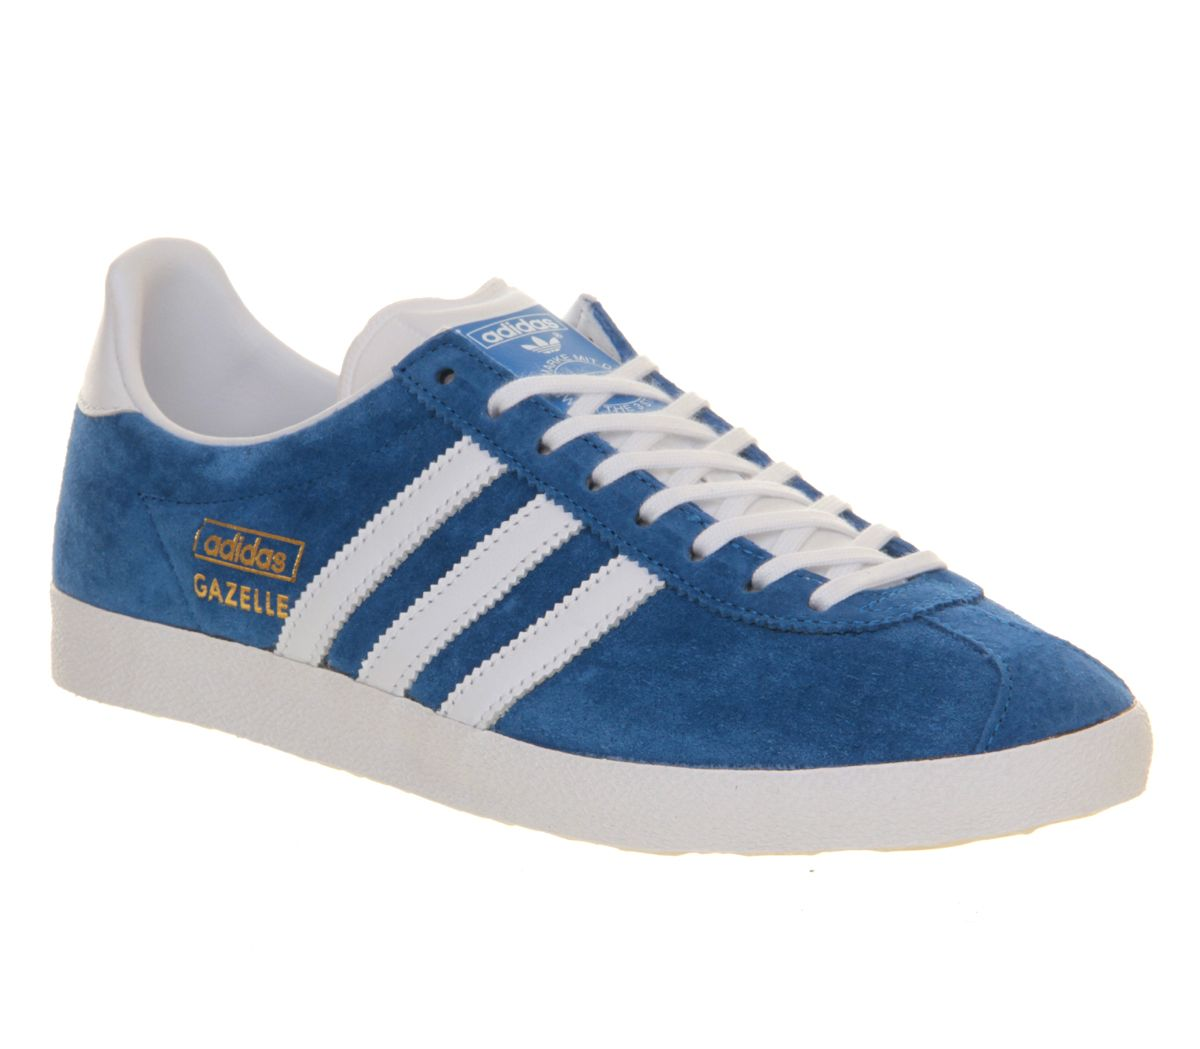 2172a862c7b279 Adidas Gazelle Og Air Force Blue White - His trainers